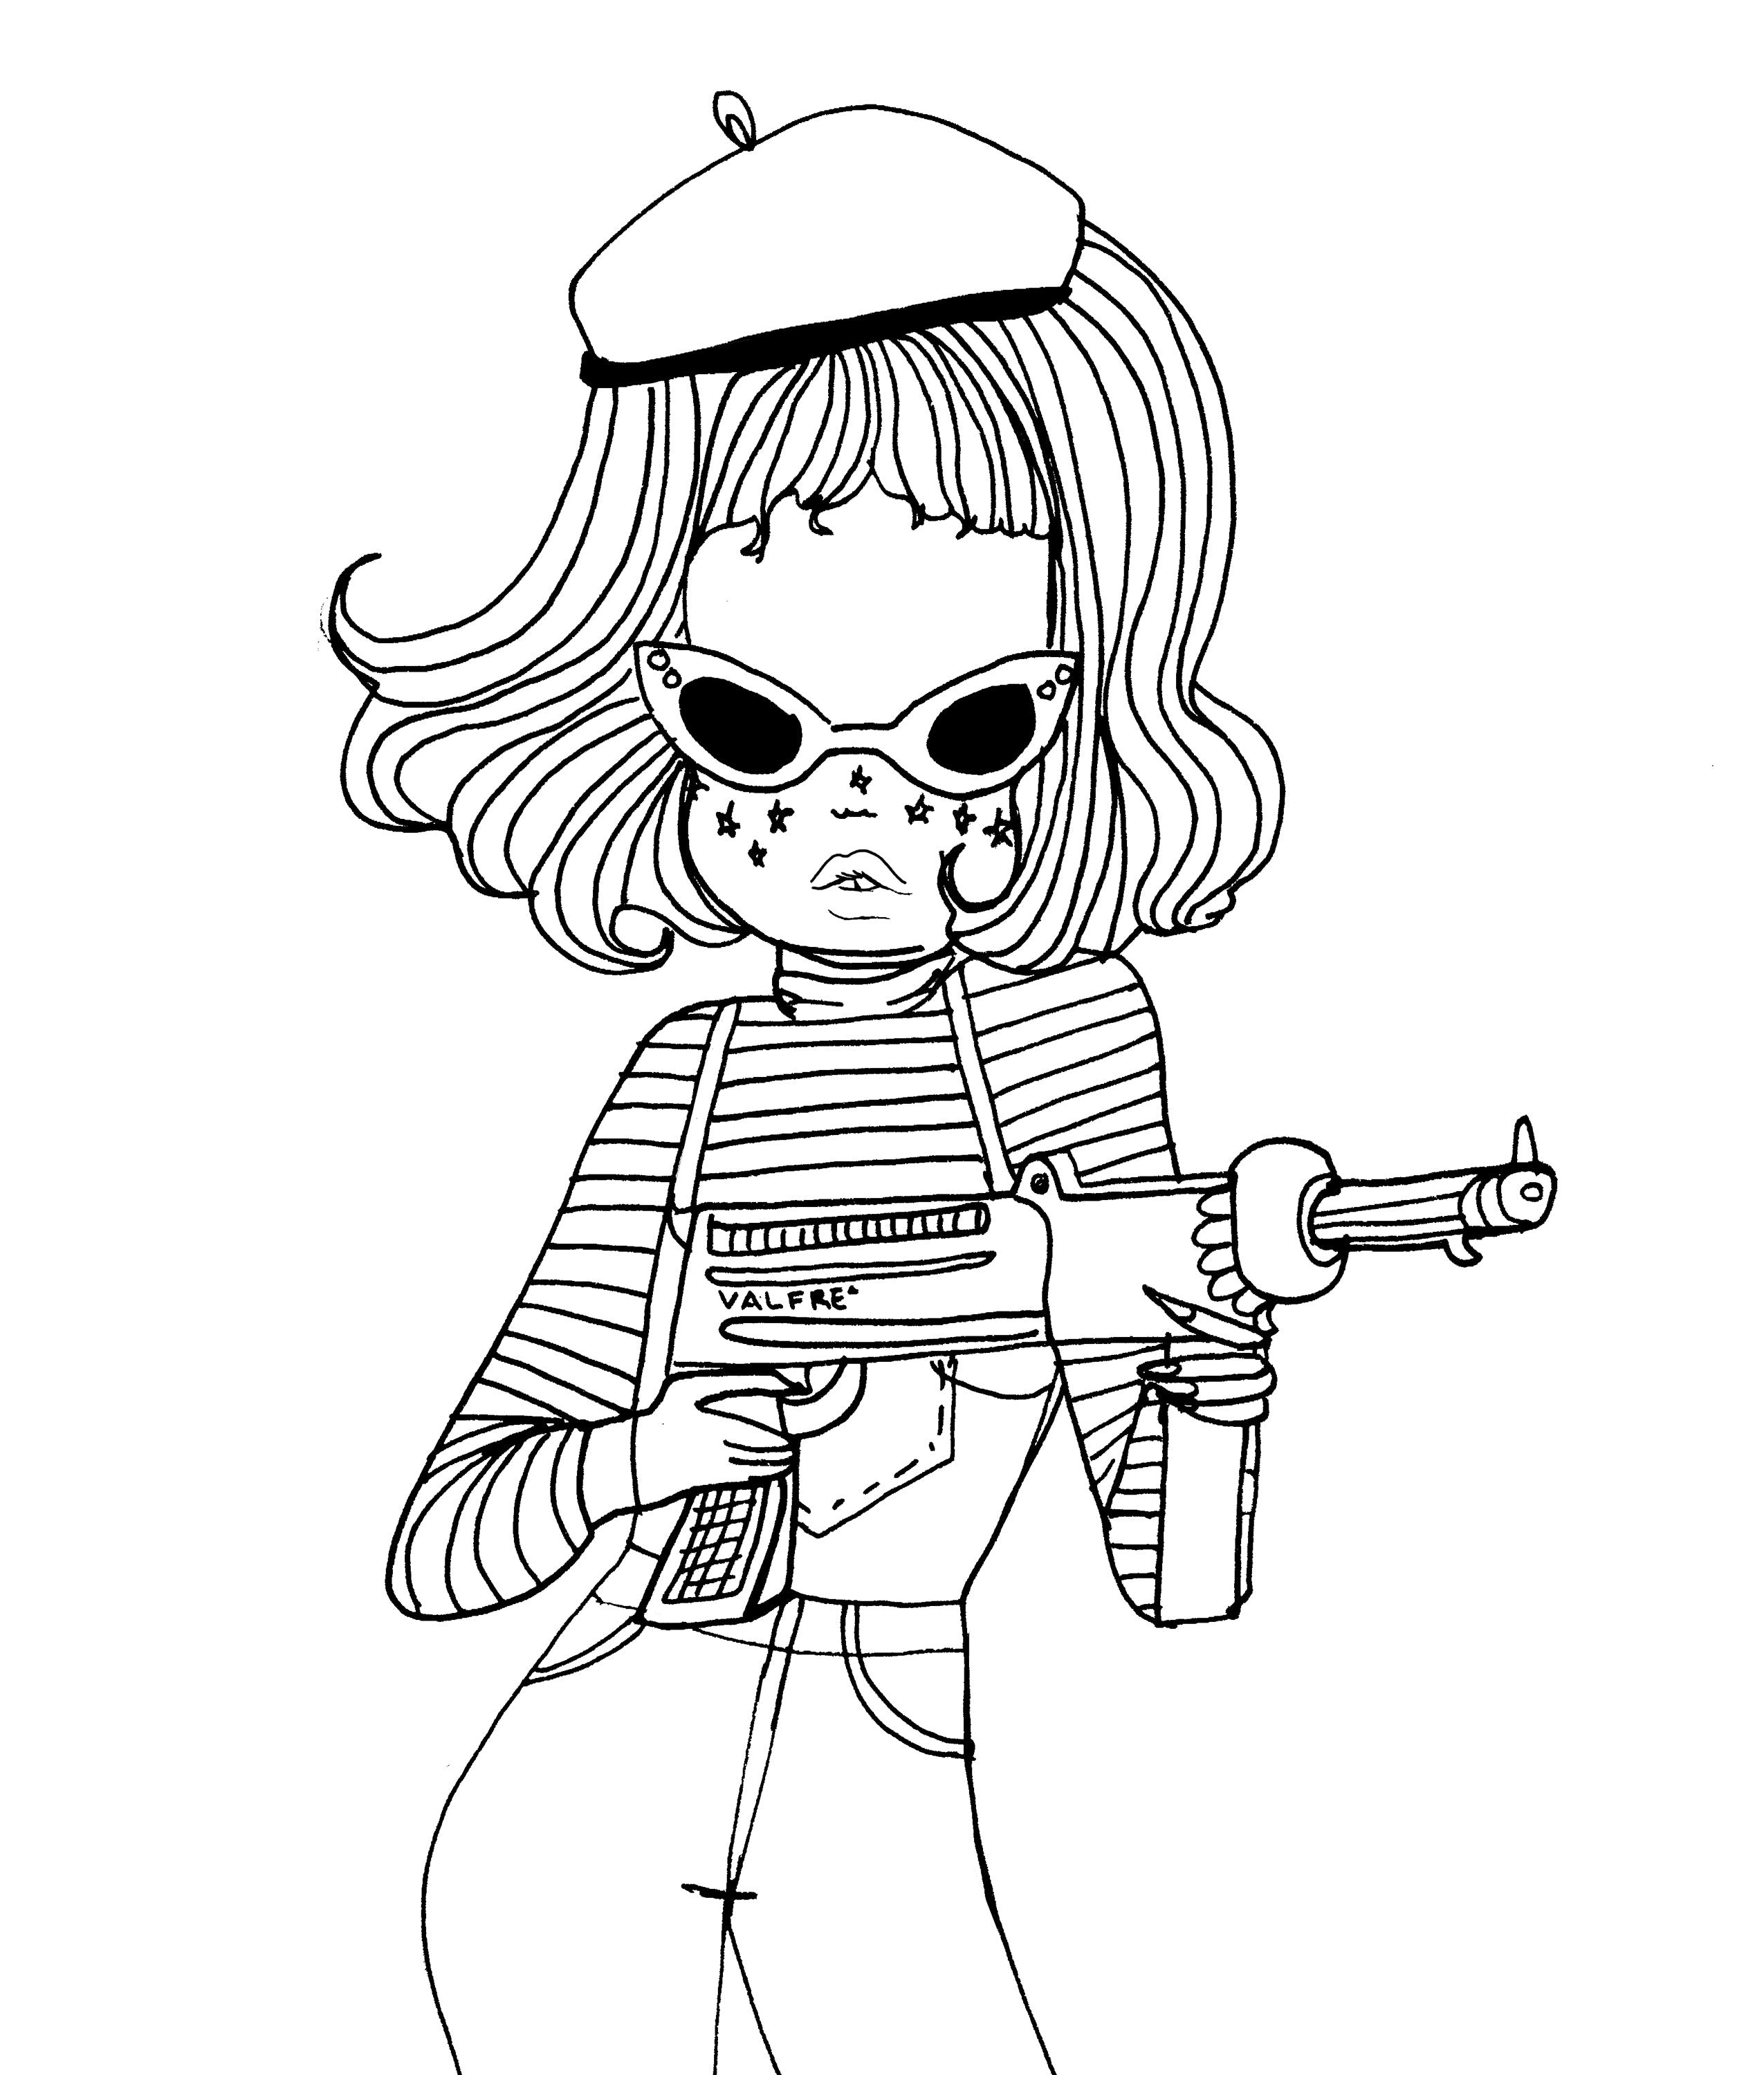 phone room coloring pages - photo#42